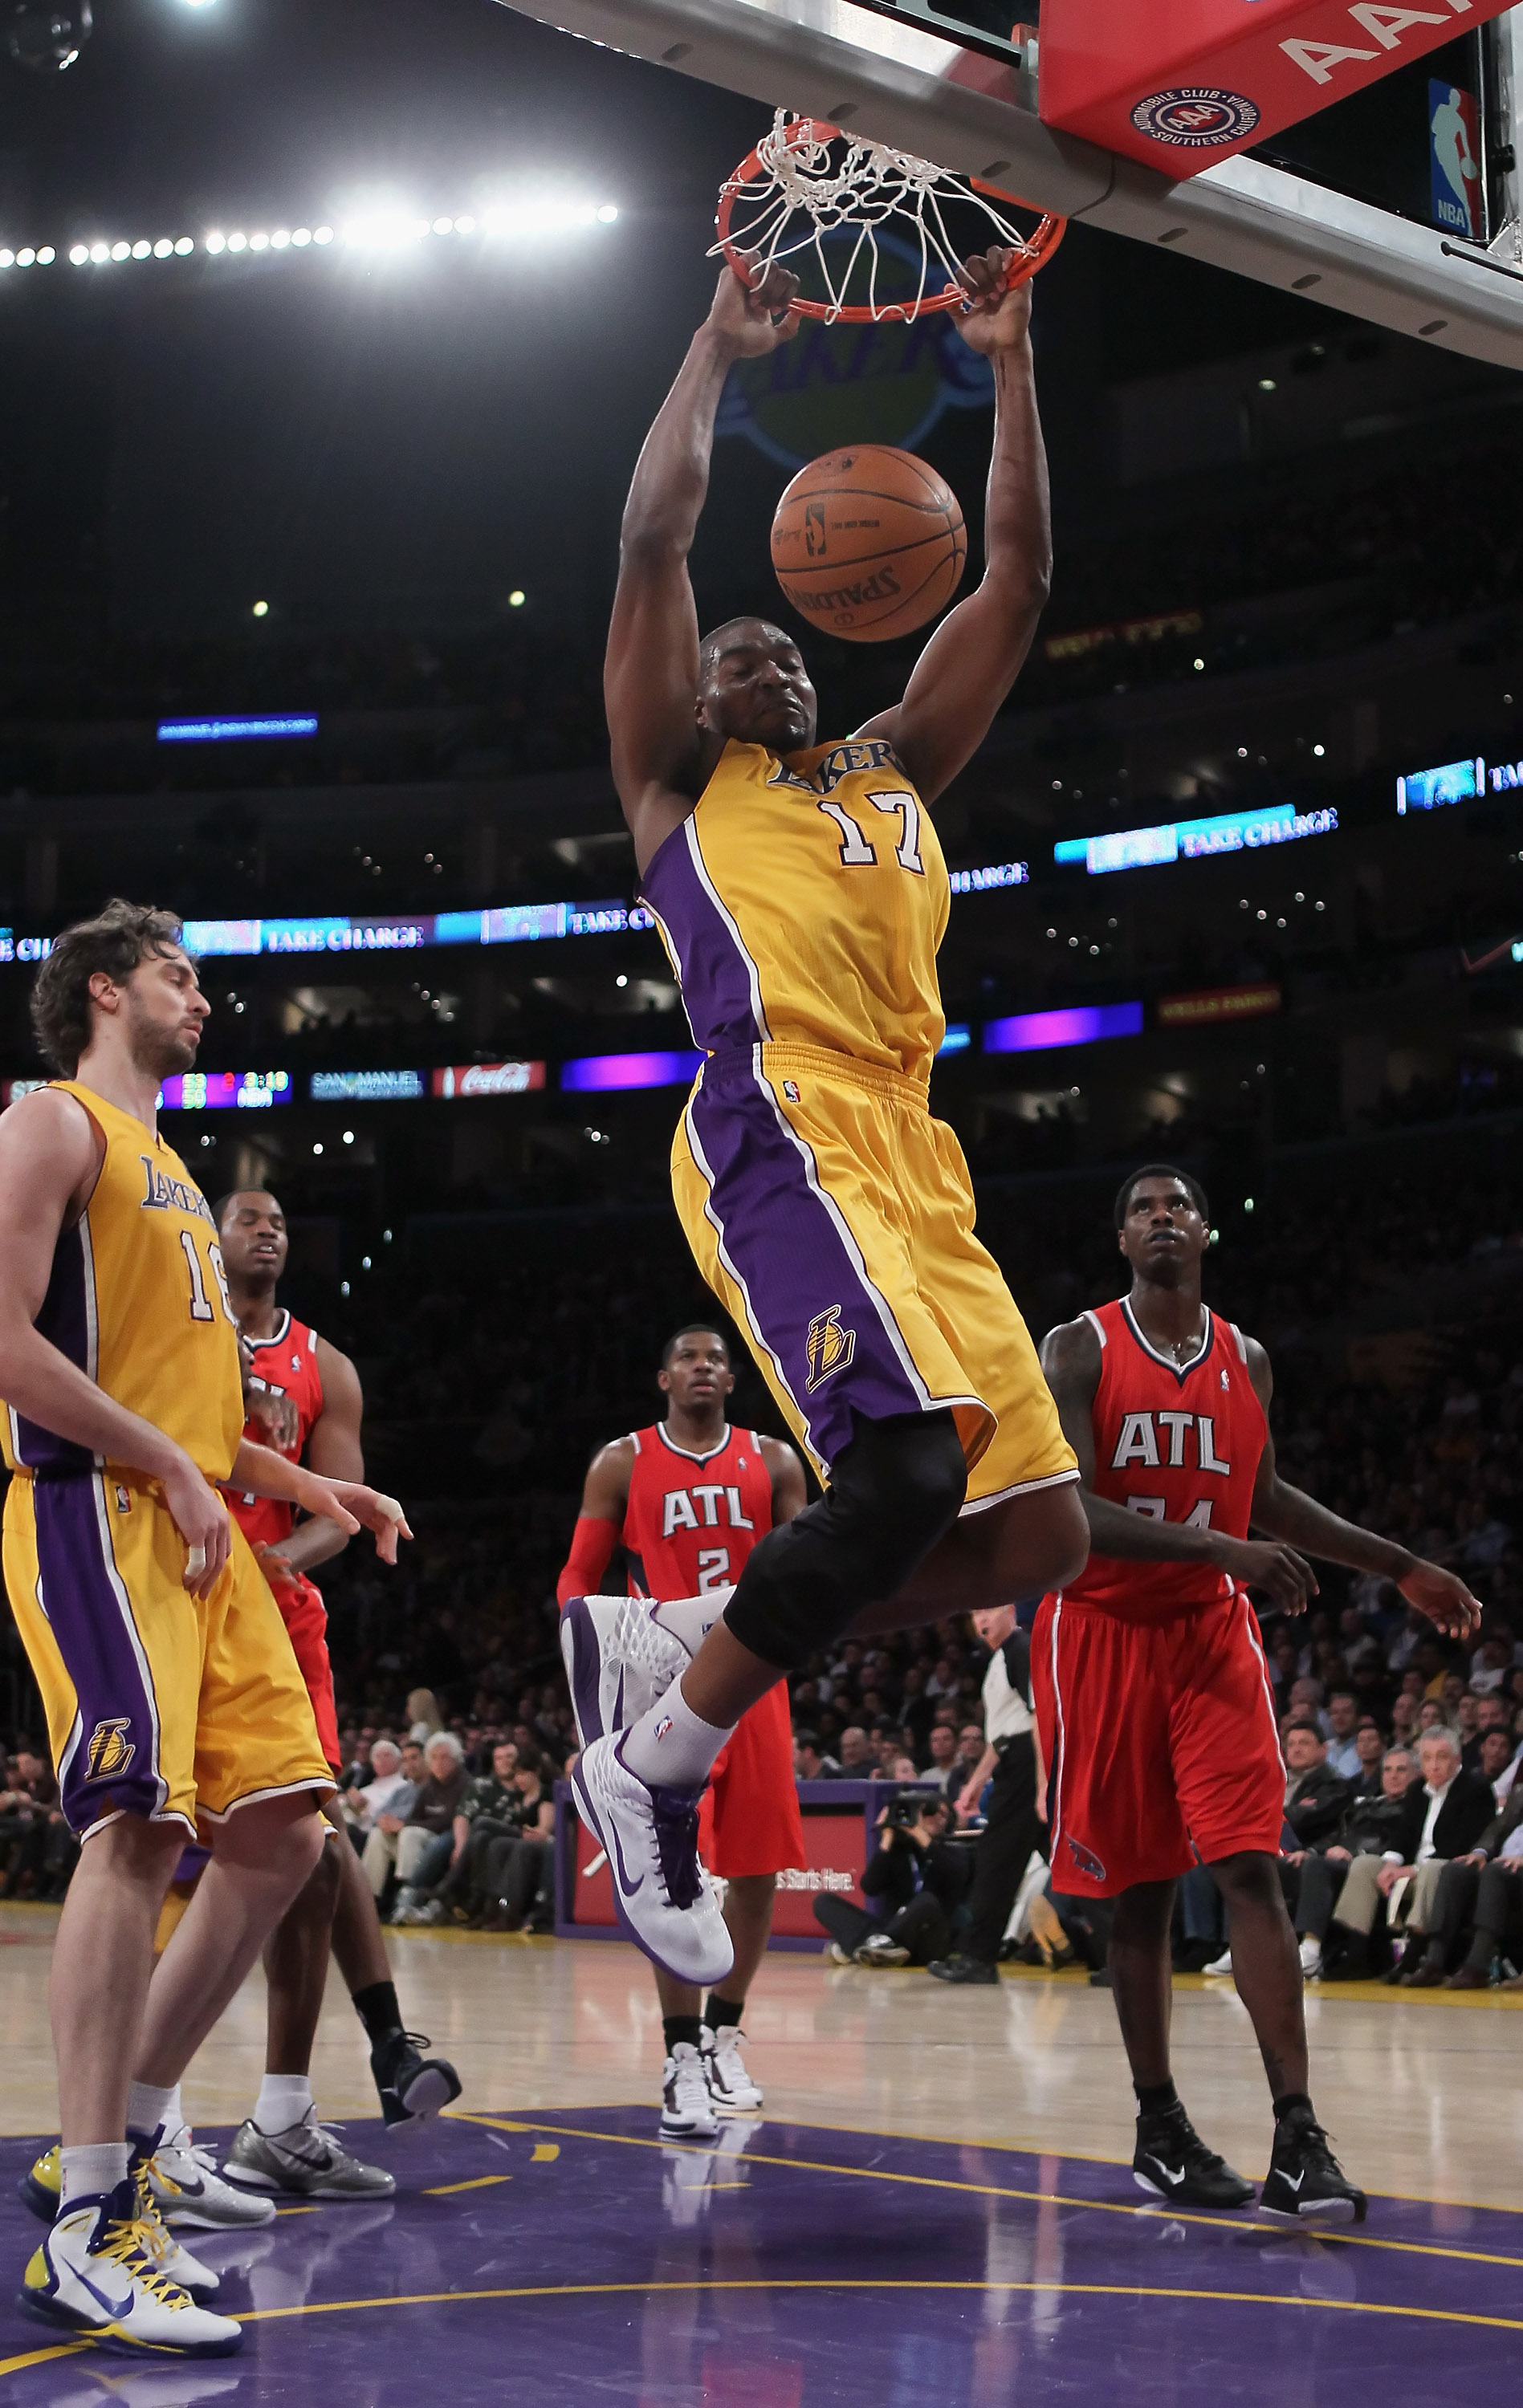 LOS ANGELES, CA - FEBRUARY 22:  Andrew Bynum #17 of the Los Angeles Lakers drives to the basket for a dunk against the Atlanta Hawks in the first half at Staples Center on February 22, 2011 in Los Angeles, California. NOTE TO USER: User expressly acknowle